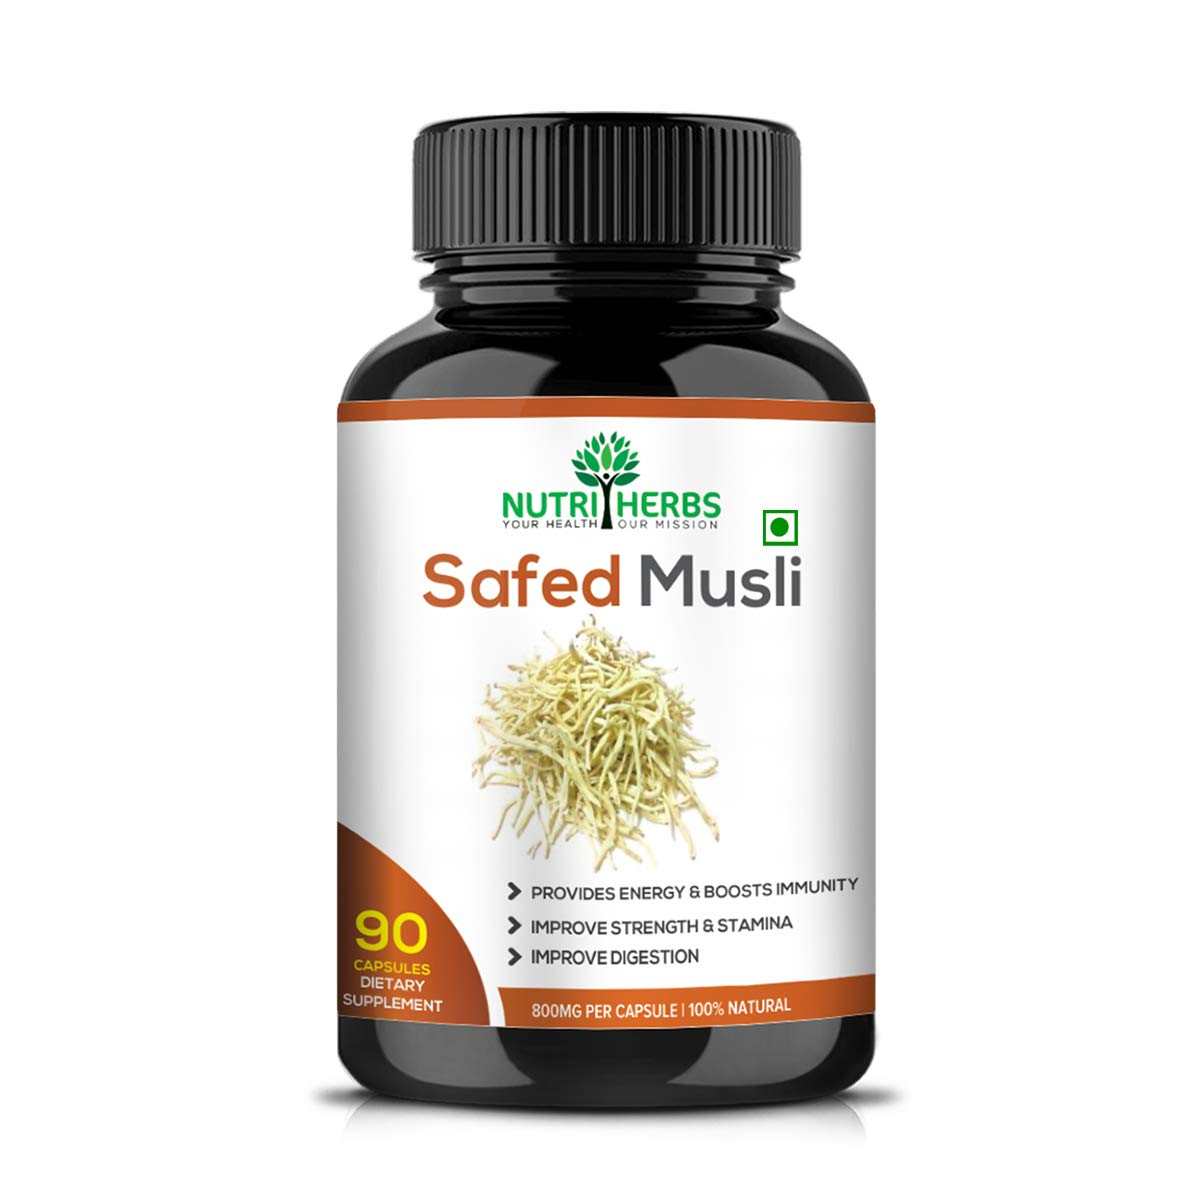 Safed Musli Capsules Your Daily Supplement for Extra Energy